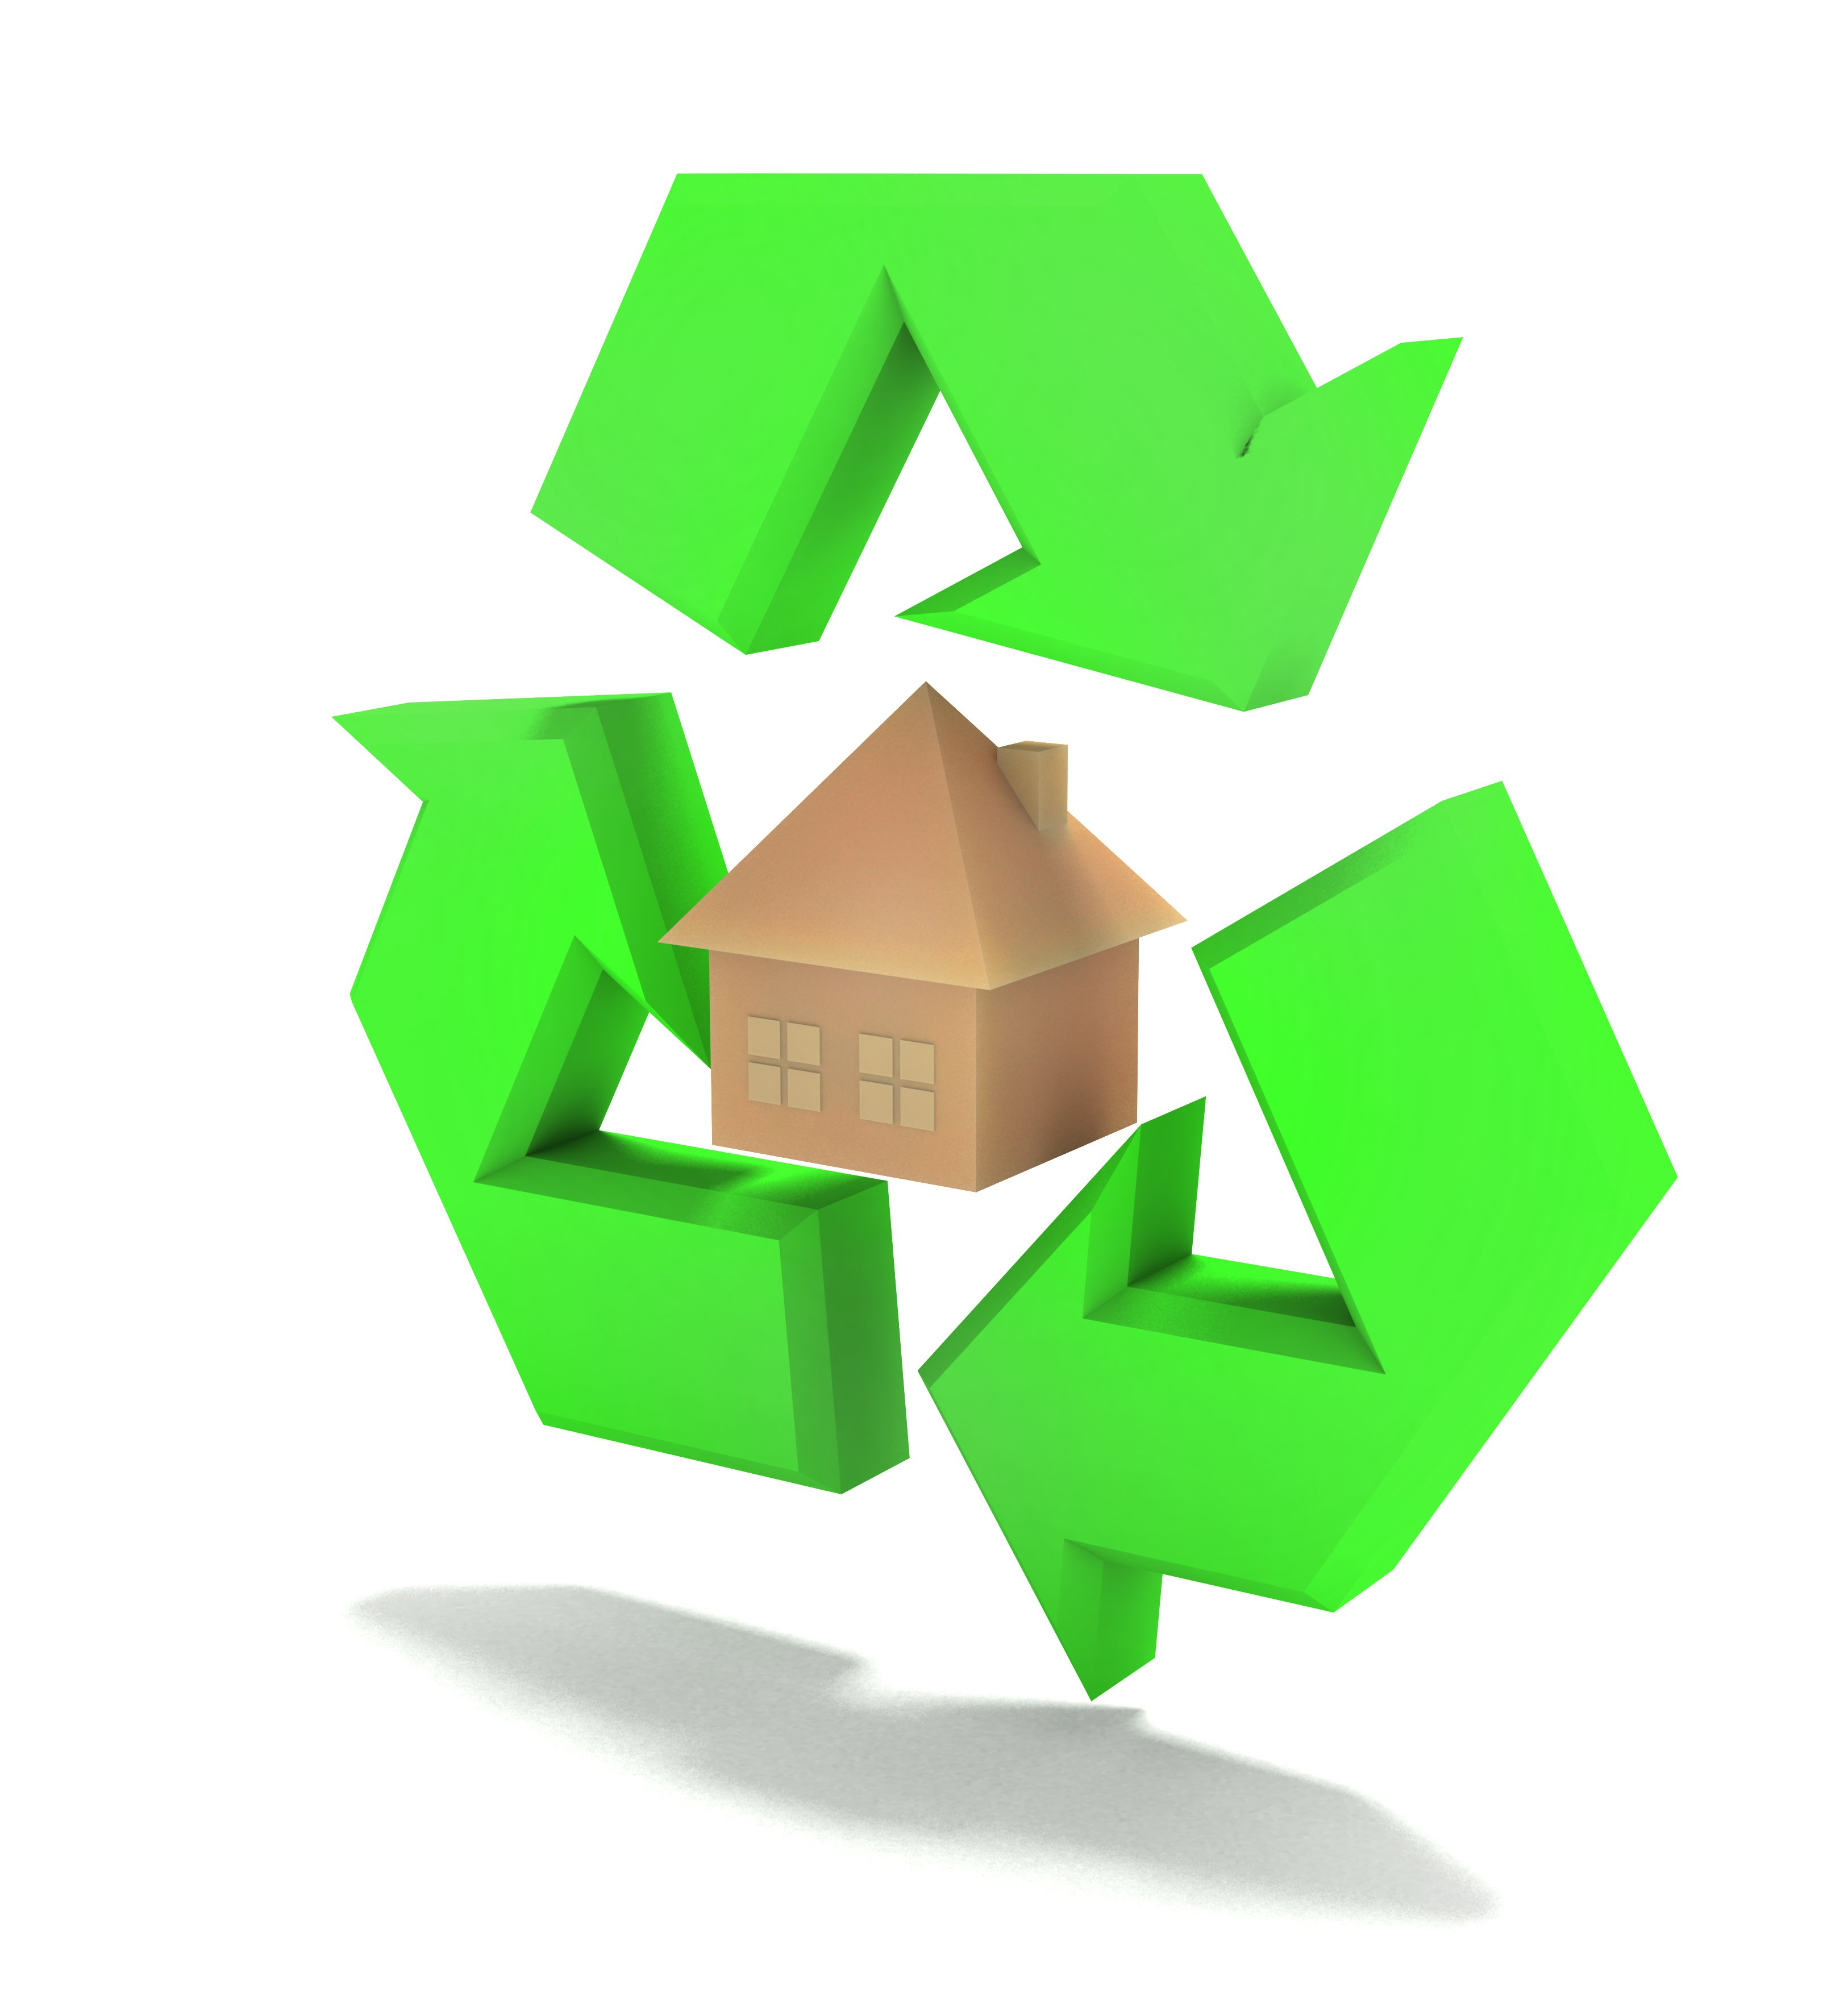 recycling of construction materials Construction waste: waste generated by construction activities, such as scrap, damaged or spoiled materials, temporary and expendable construction materials, and aids that are not included in the finished project, packaging materials, and waste generated by the workforce.